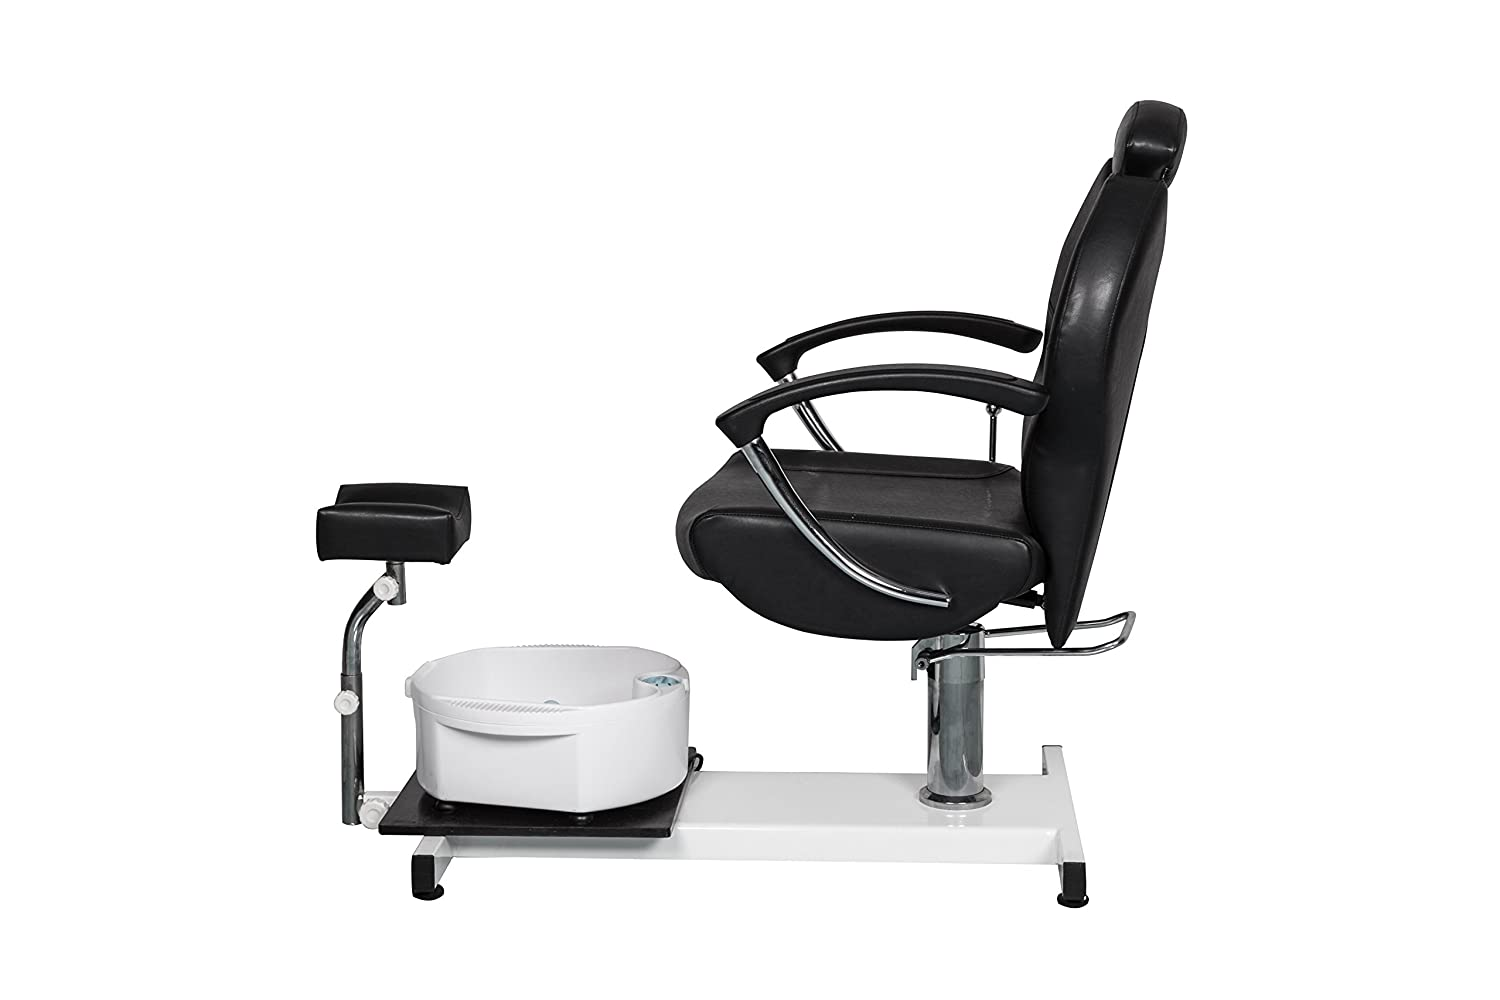 Pedicure spa chair hydraulic beauty salon equipment ebay for Hydraulic chairs beauty salon